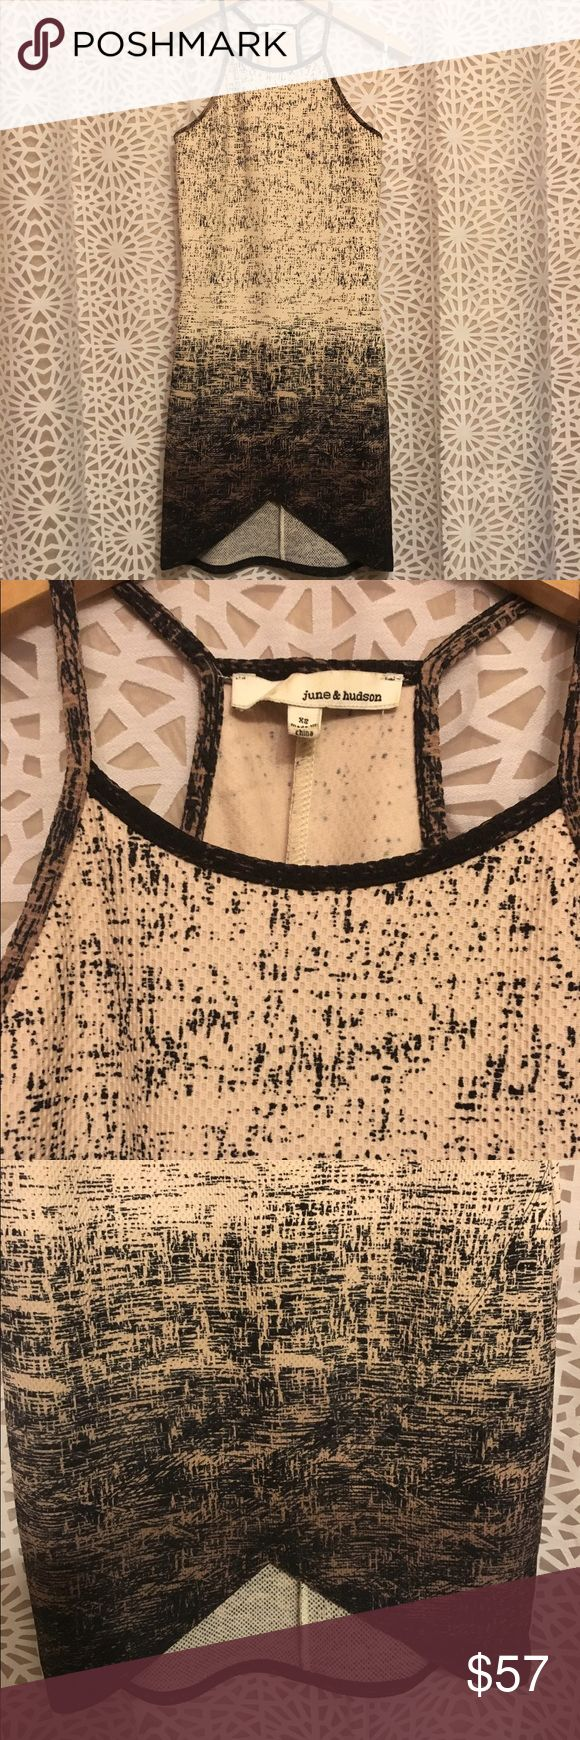 June & Hudson Printed Pique Bodycon Dress Cream and brown bodycon dress with black speckled print and pique texture. High neckline, with a cutout skirt. Mid length. Size XS. Excellent condition, no flaws! June & Hudson Dresses